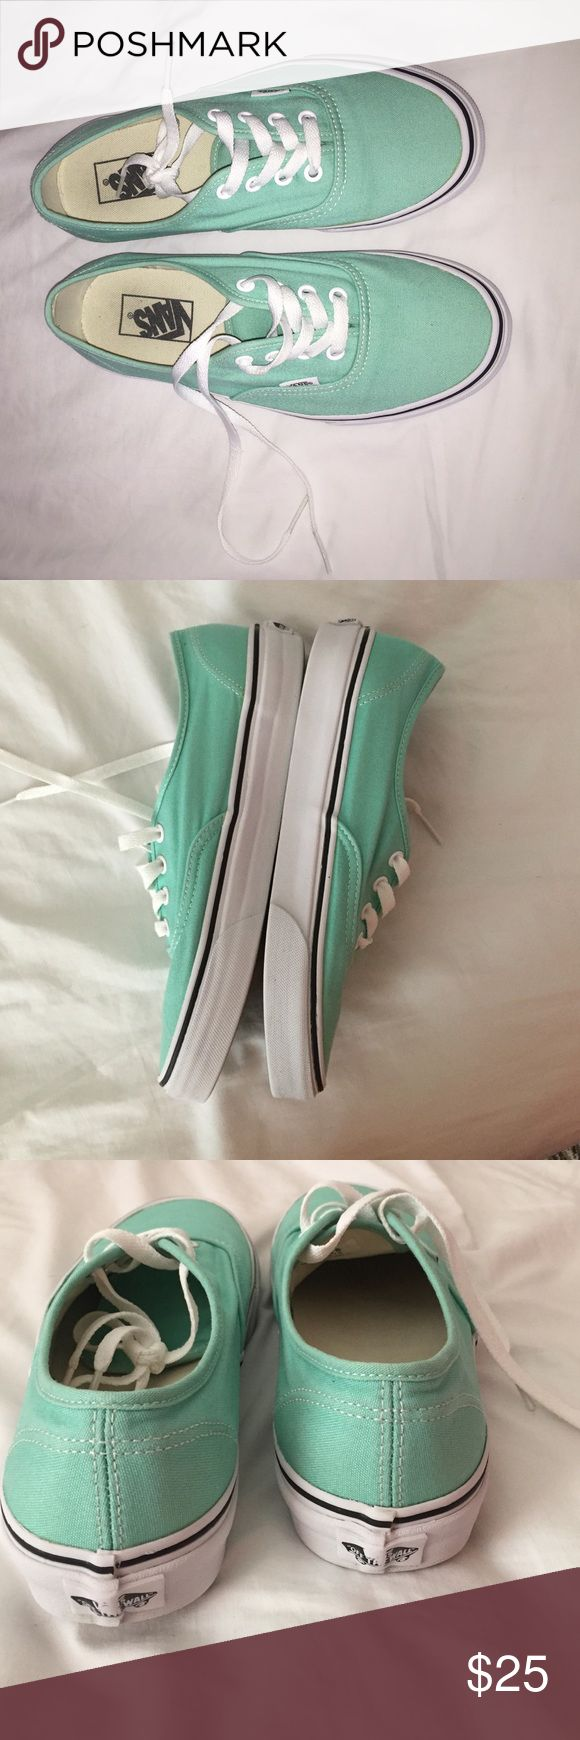 Very gently used mint Vans! Beach glass color, goes well with many outfits! Give me an offer! Vans Shoes Sneakers